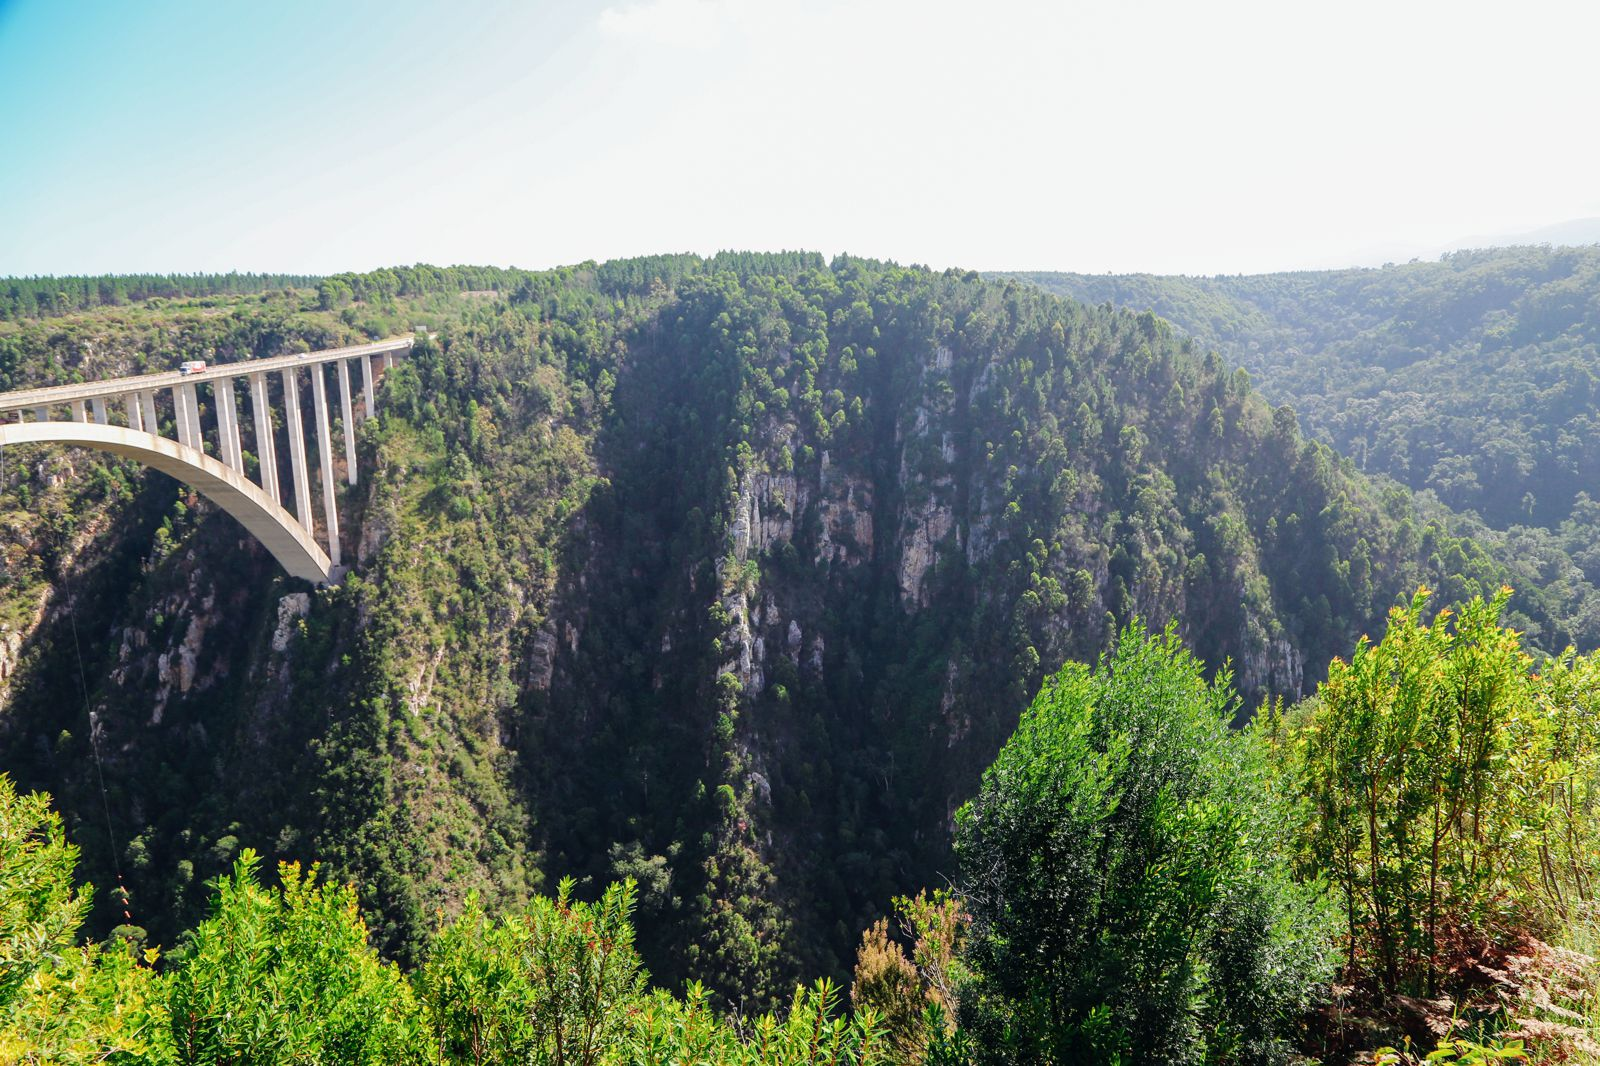 Eastern Cape Adventures In South Africa: Wines, 1,000 Year Old Trees And The Tallest Bungee In The World! (42)